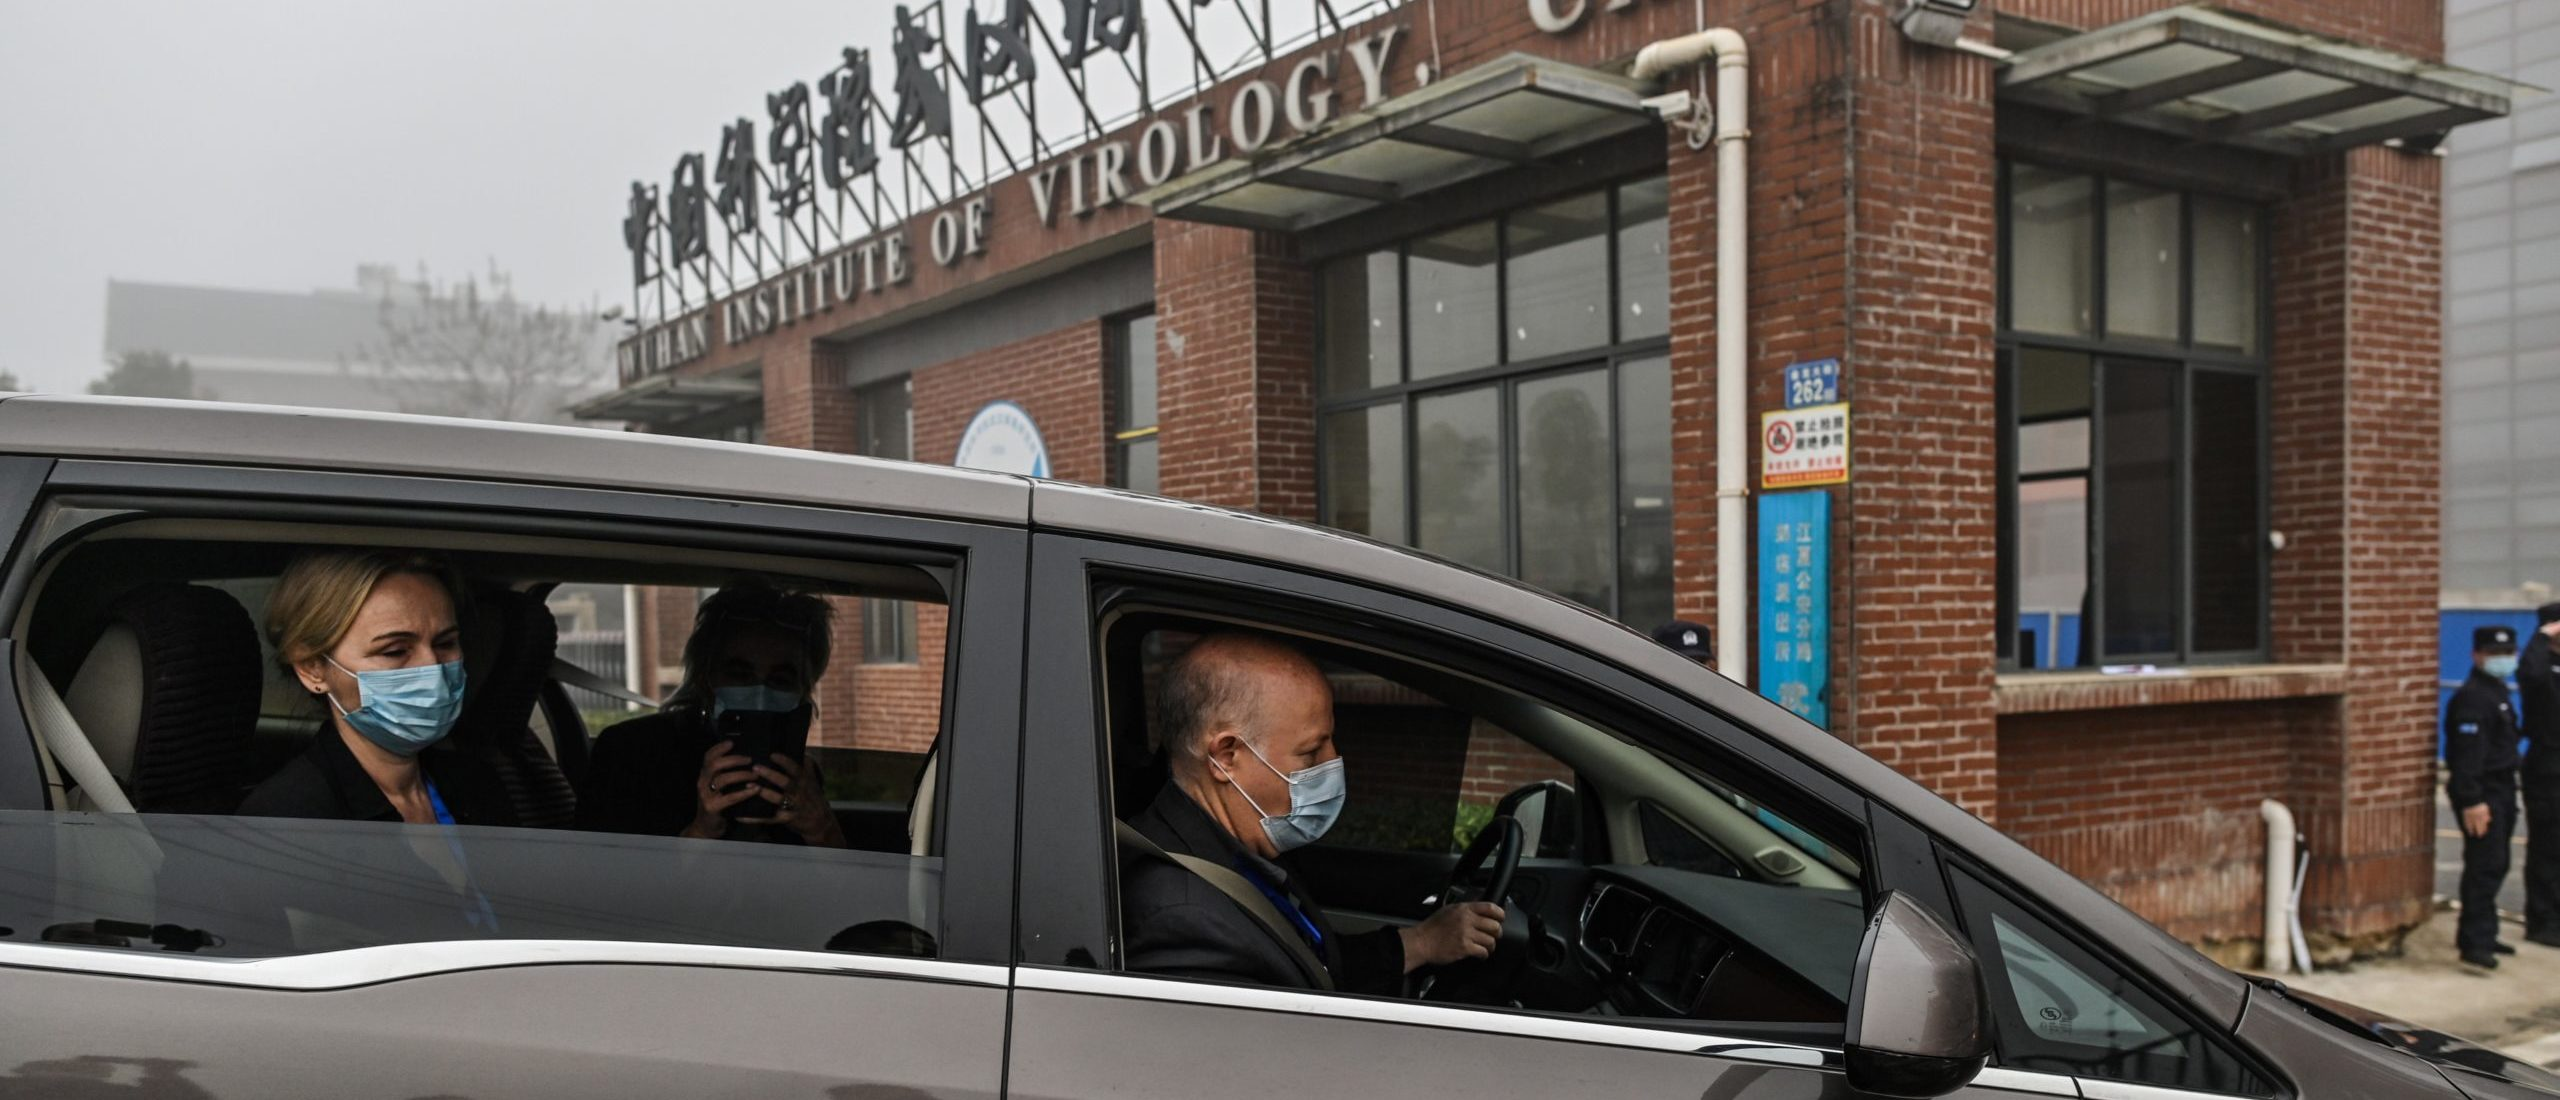 Peter Daszak (R), Thea Fischer (L) and other members of the World Health Organization (WHO) team investigating the origins of the COVID-19 coronavirus, arrive at the Wuhan Institute of Virology in Wuhan in China's central Hubei province on February 3, 2021. (Photo by Hector RETAMAL / AFP) (Photo by HECTOR RETAMAL/AFP via Getty Images)